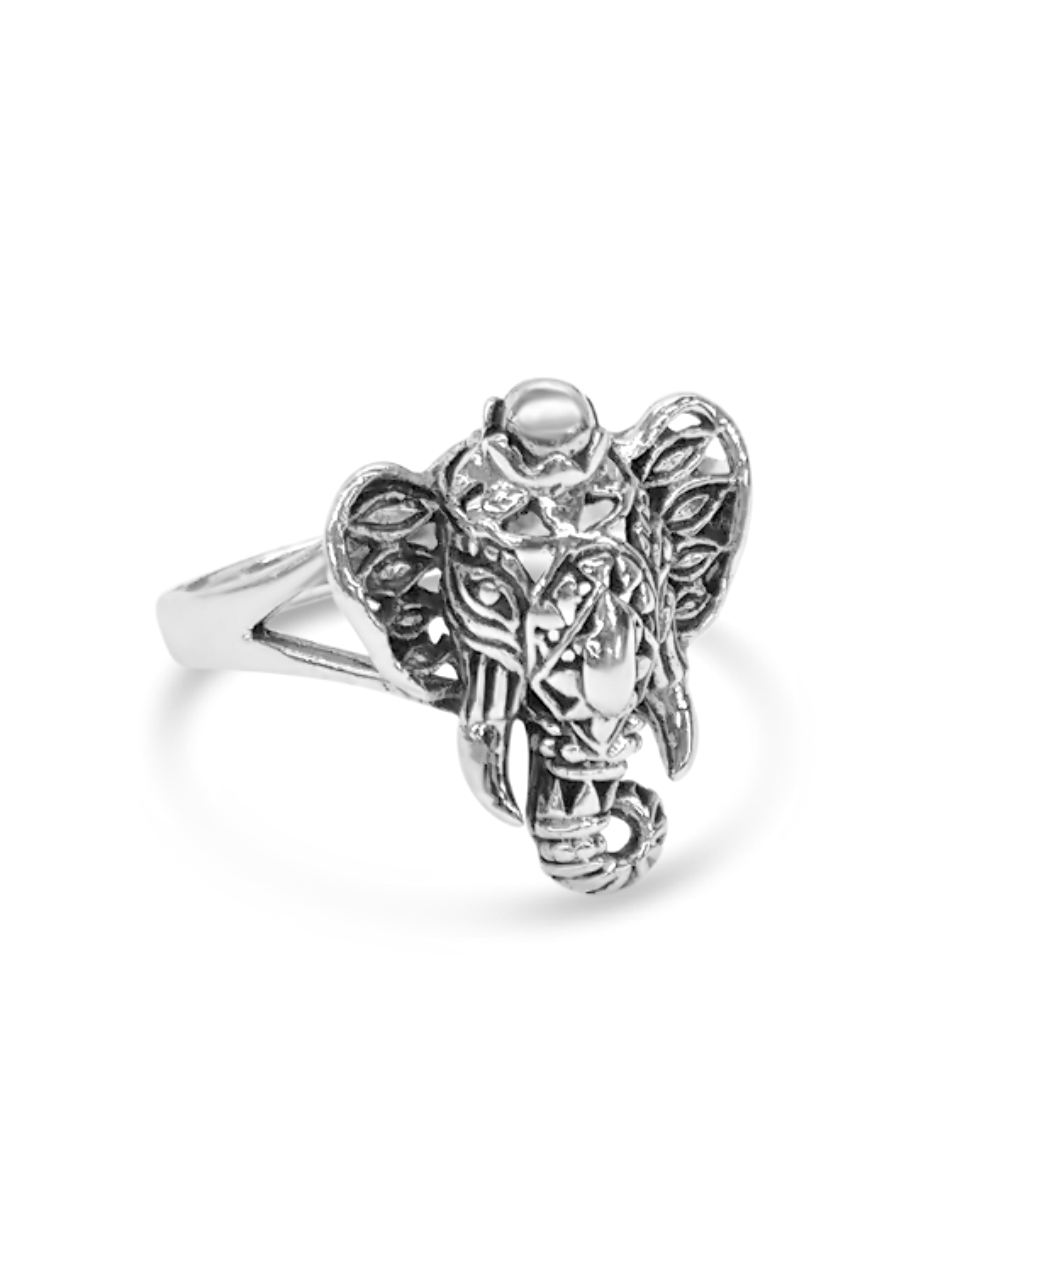 Elephant Filigree Ring